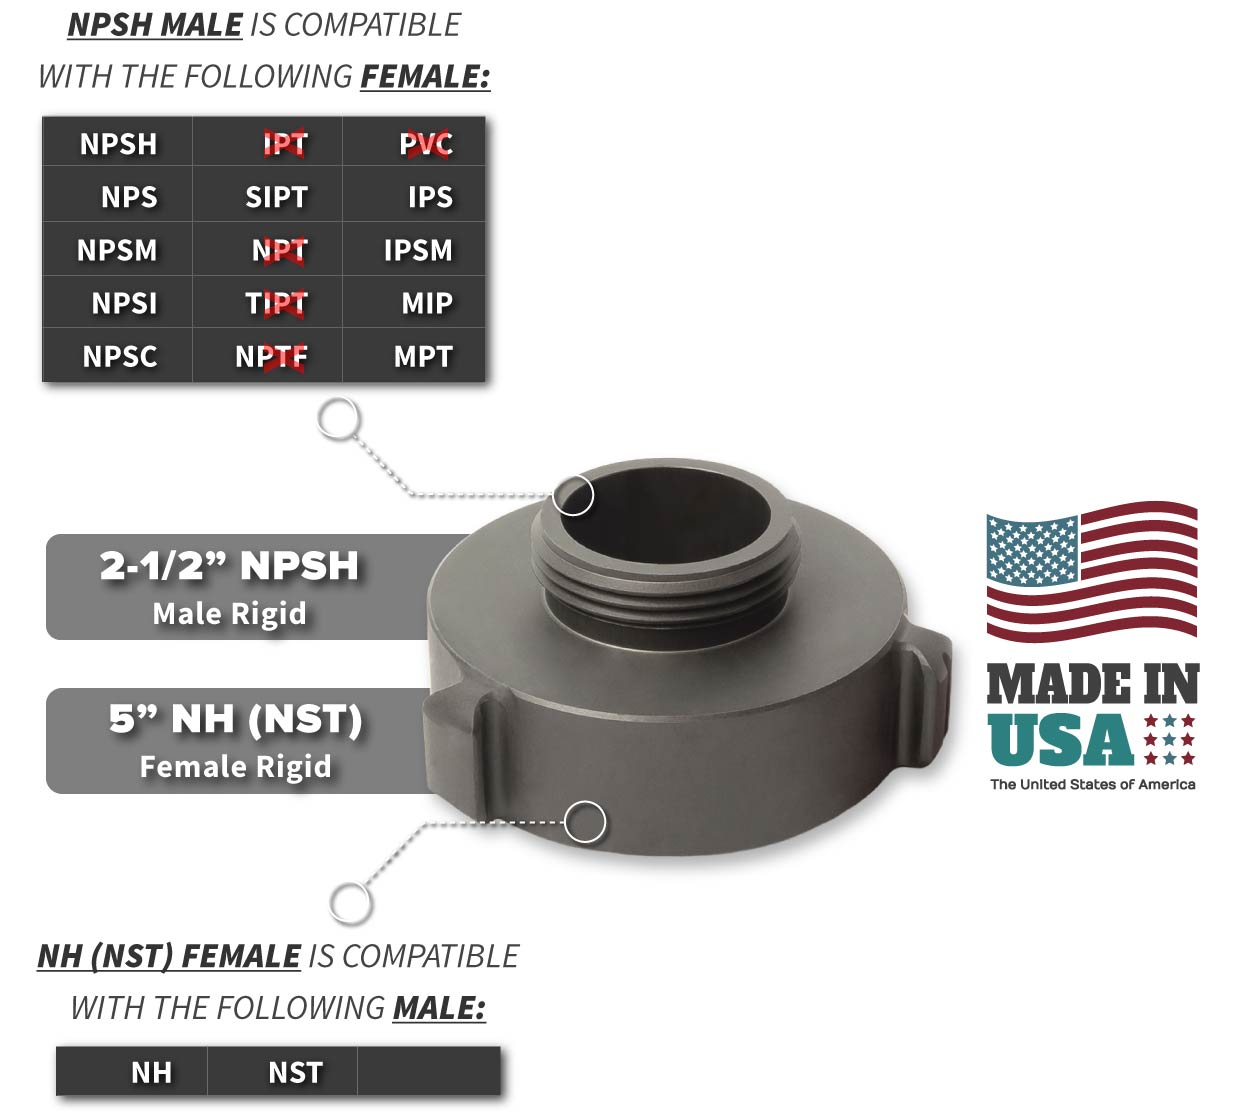 5 Inch NH-NST Female x 2.5 Inch NPSH Male Compatibility Thread Chart